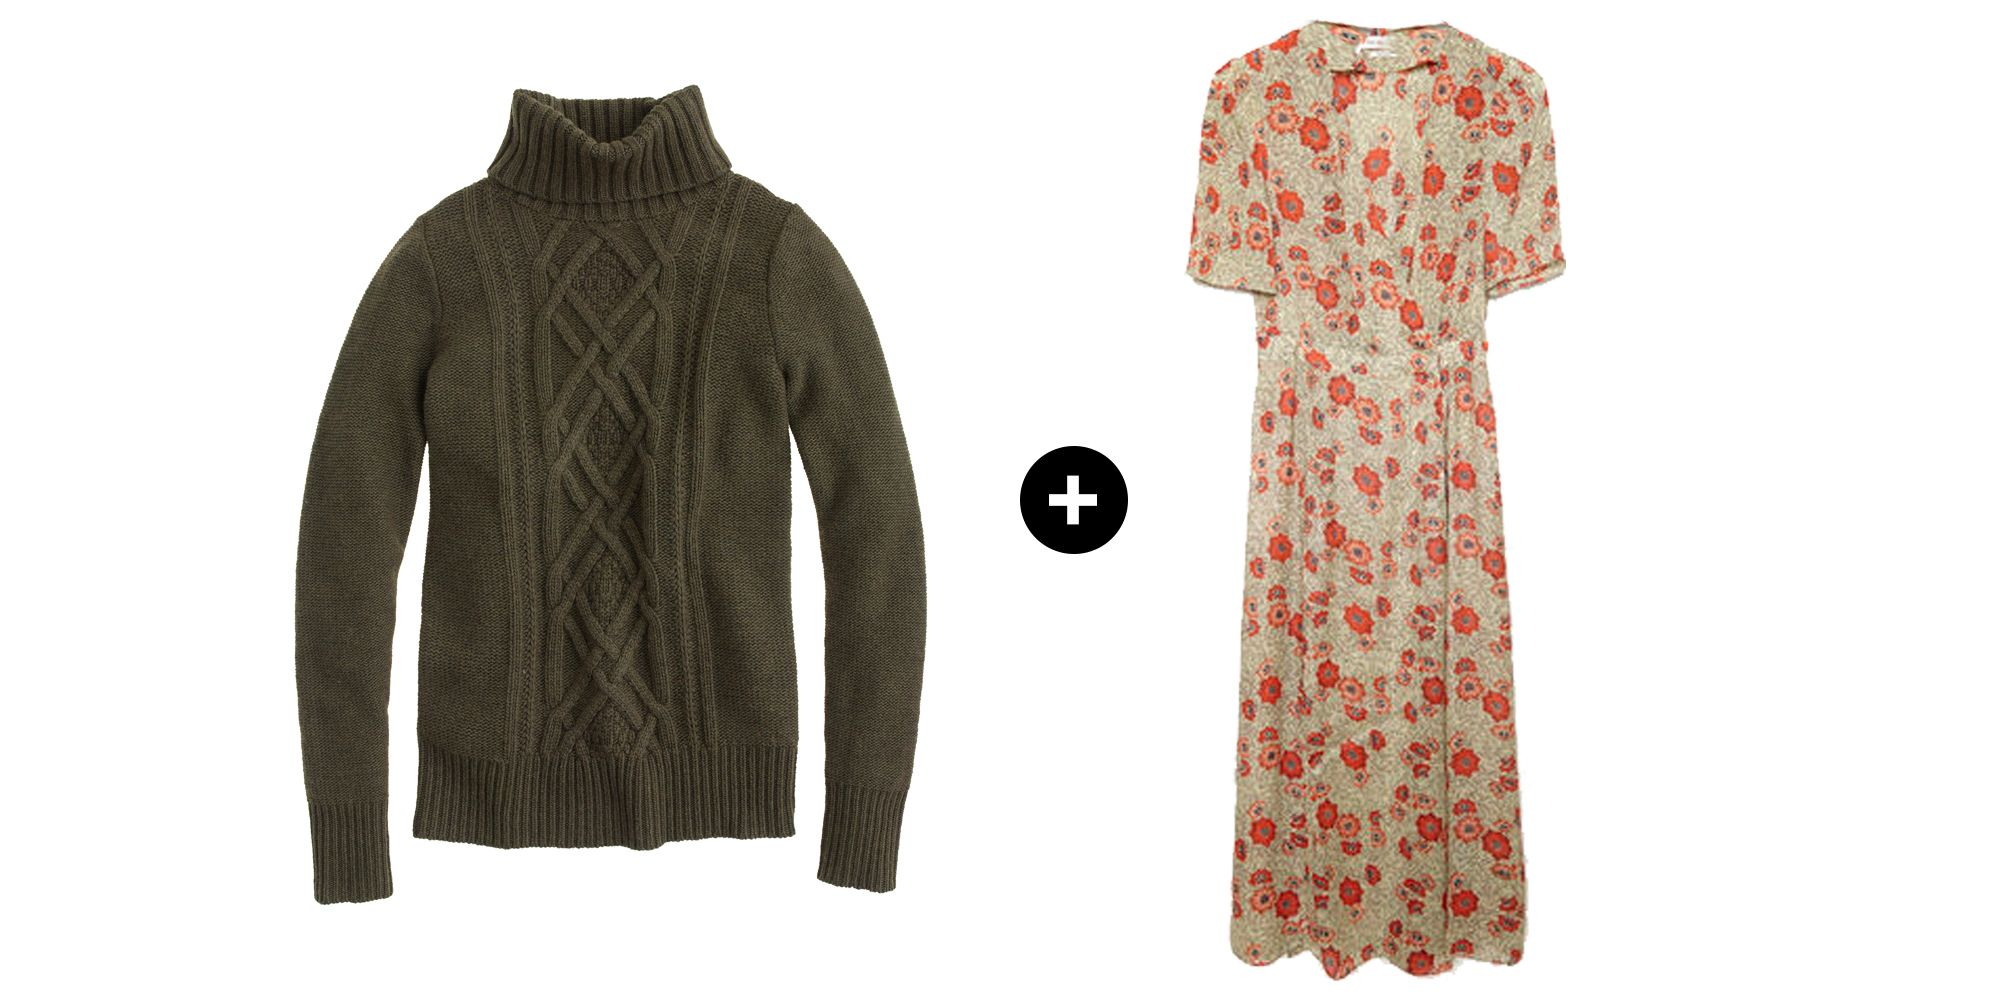 "<p>It might seem unnatural to wear a heavy sweater under a sundress, but don't you want to pack some mileage into those floral frocks? A cable knit sweater is a unique way to add some style and warmth this season. </p><p>J.Crew Cambridge Cable Turtleneck Sweater, $98&#x3B; <u><a href=""https://www.jcrew.com/womens_special_sizes/xxs/sweaters/PRDOVR~B2795/B2795.jsp"" target=""_blank"">jcrew.com</a></u><br></p><p><u><a href=""https://www.jcrew.com/womens_category/sweaters/Turtlenecks/PRDOVR~B2795/B2795.jsp""></a></u>Isabel Marant Etoile Shania Floral Wrap Dress, $630&#x3B; <a href=""http://www.lagarconne.com/store/item/90-24-/32593/Isabel-Marant-Etoile-Shania-Floral-Wrap-Dress.htm#image_tiger_4"" target=""_blank""><u>lagarconne.com</u></a></p>"